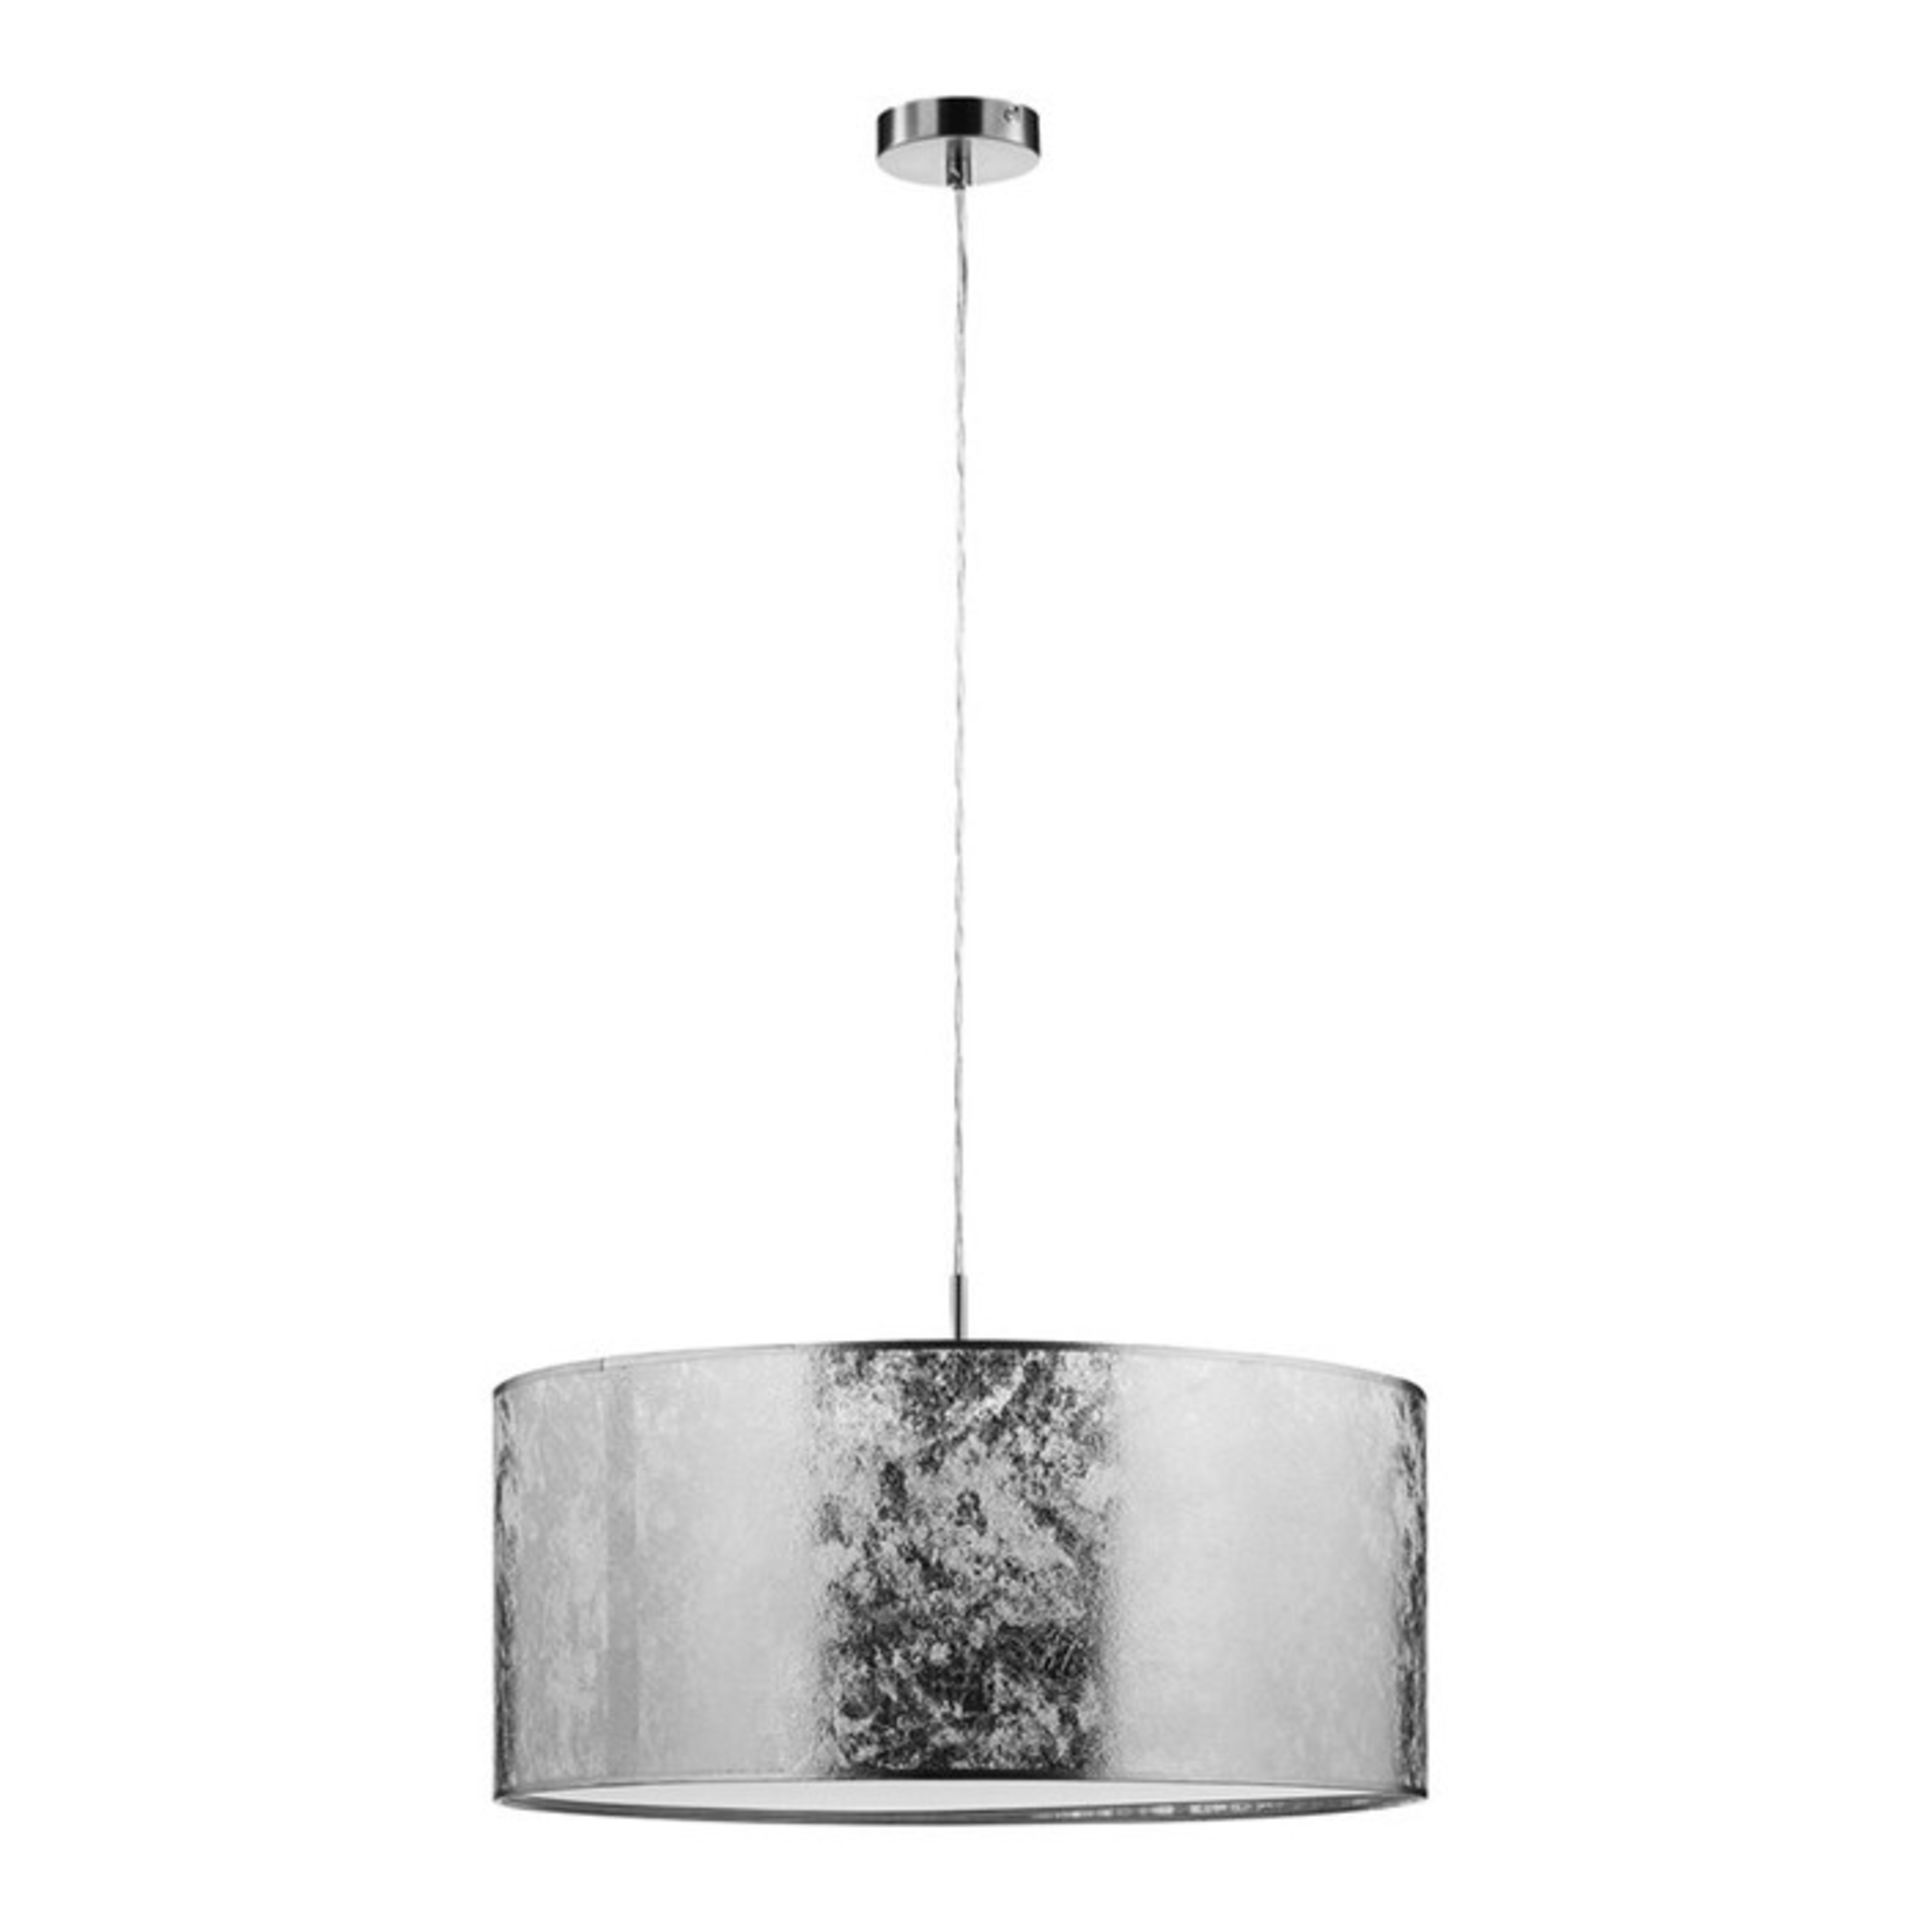 Fairmont Park, Withernsea 1-Light Drum Pendant (SILVER) - RRP£54.99 (HLCP4554 - 15630/10) 7F